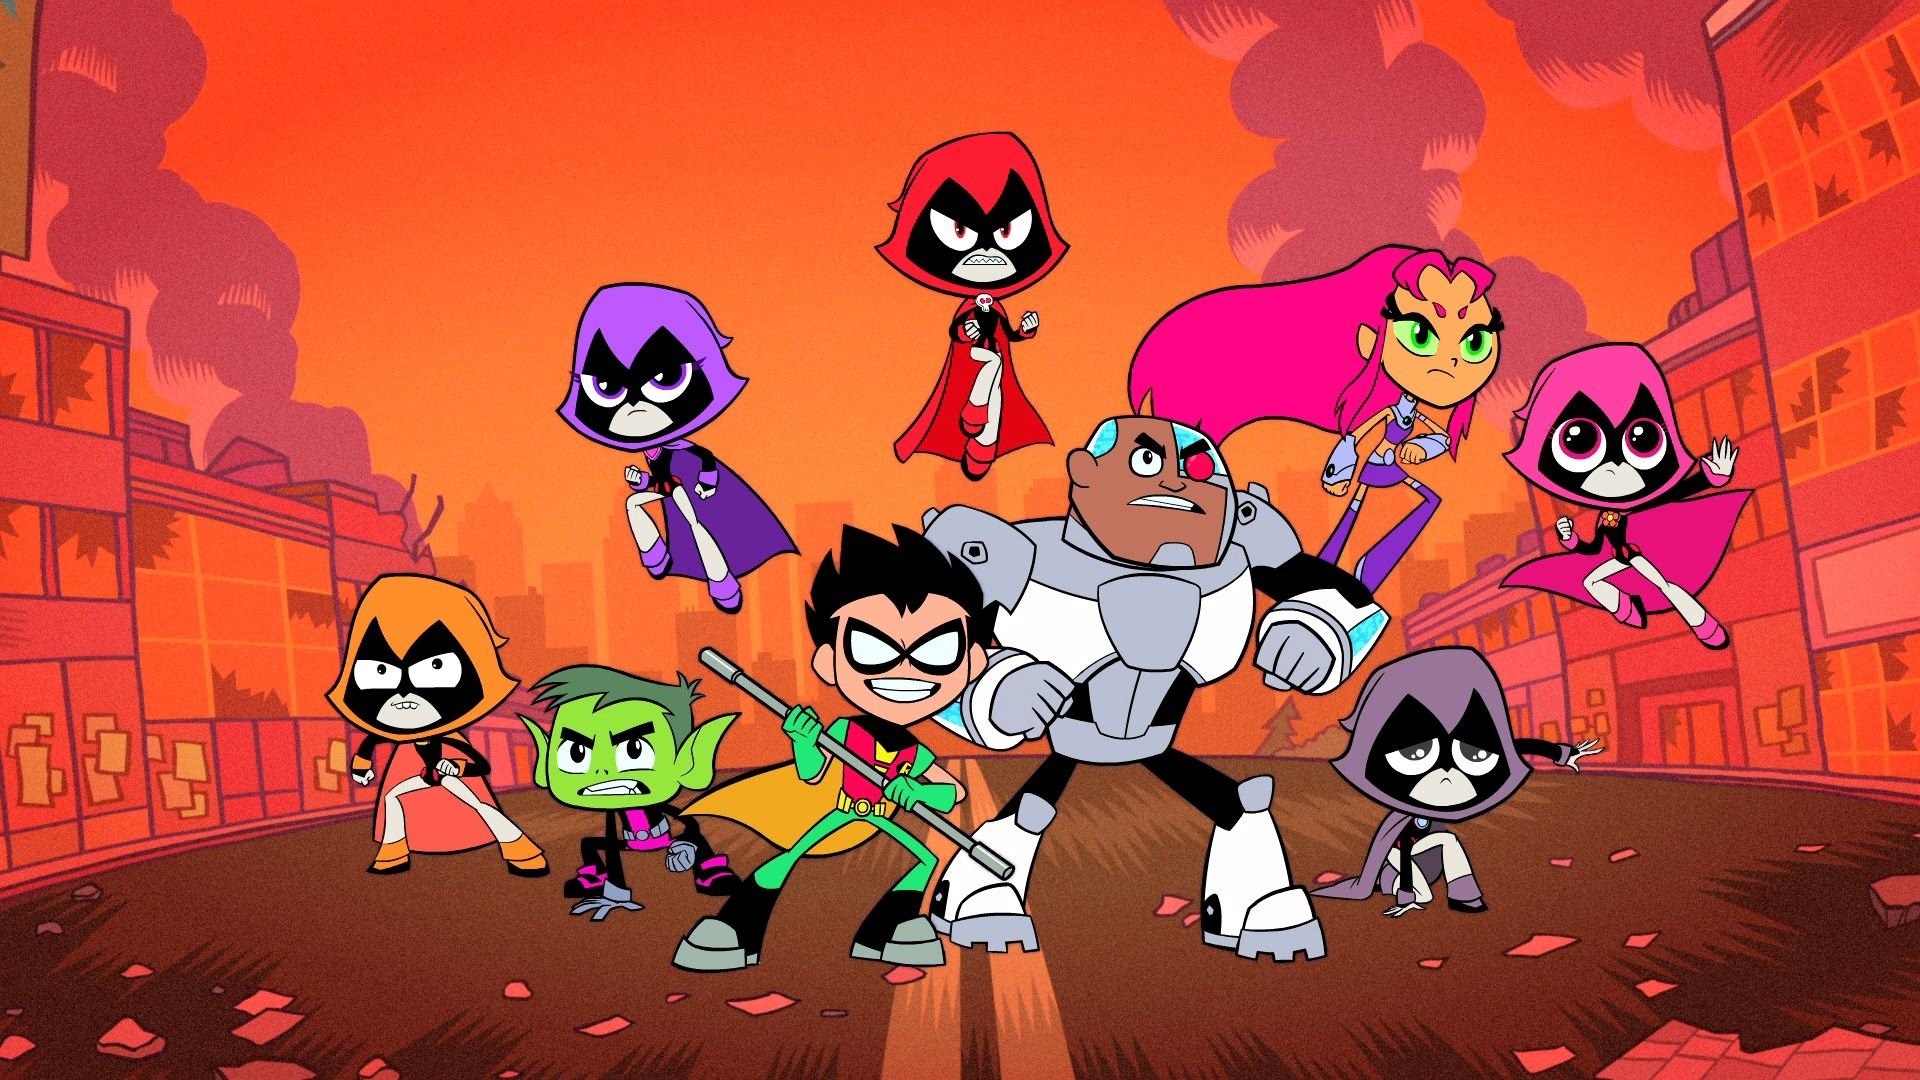 teen-titans-the-cartoon-young-teen-image-boards